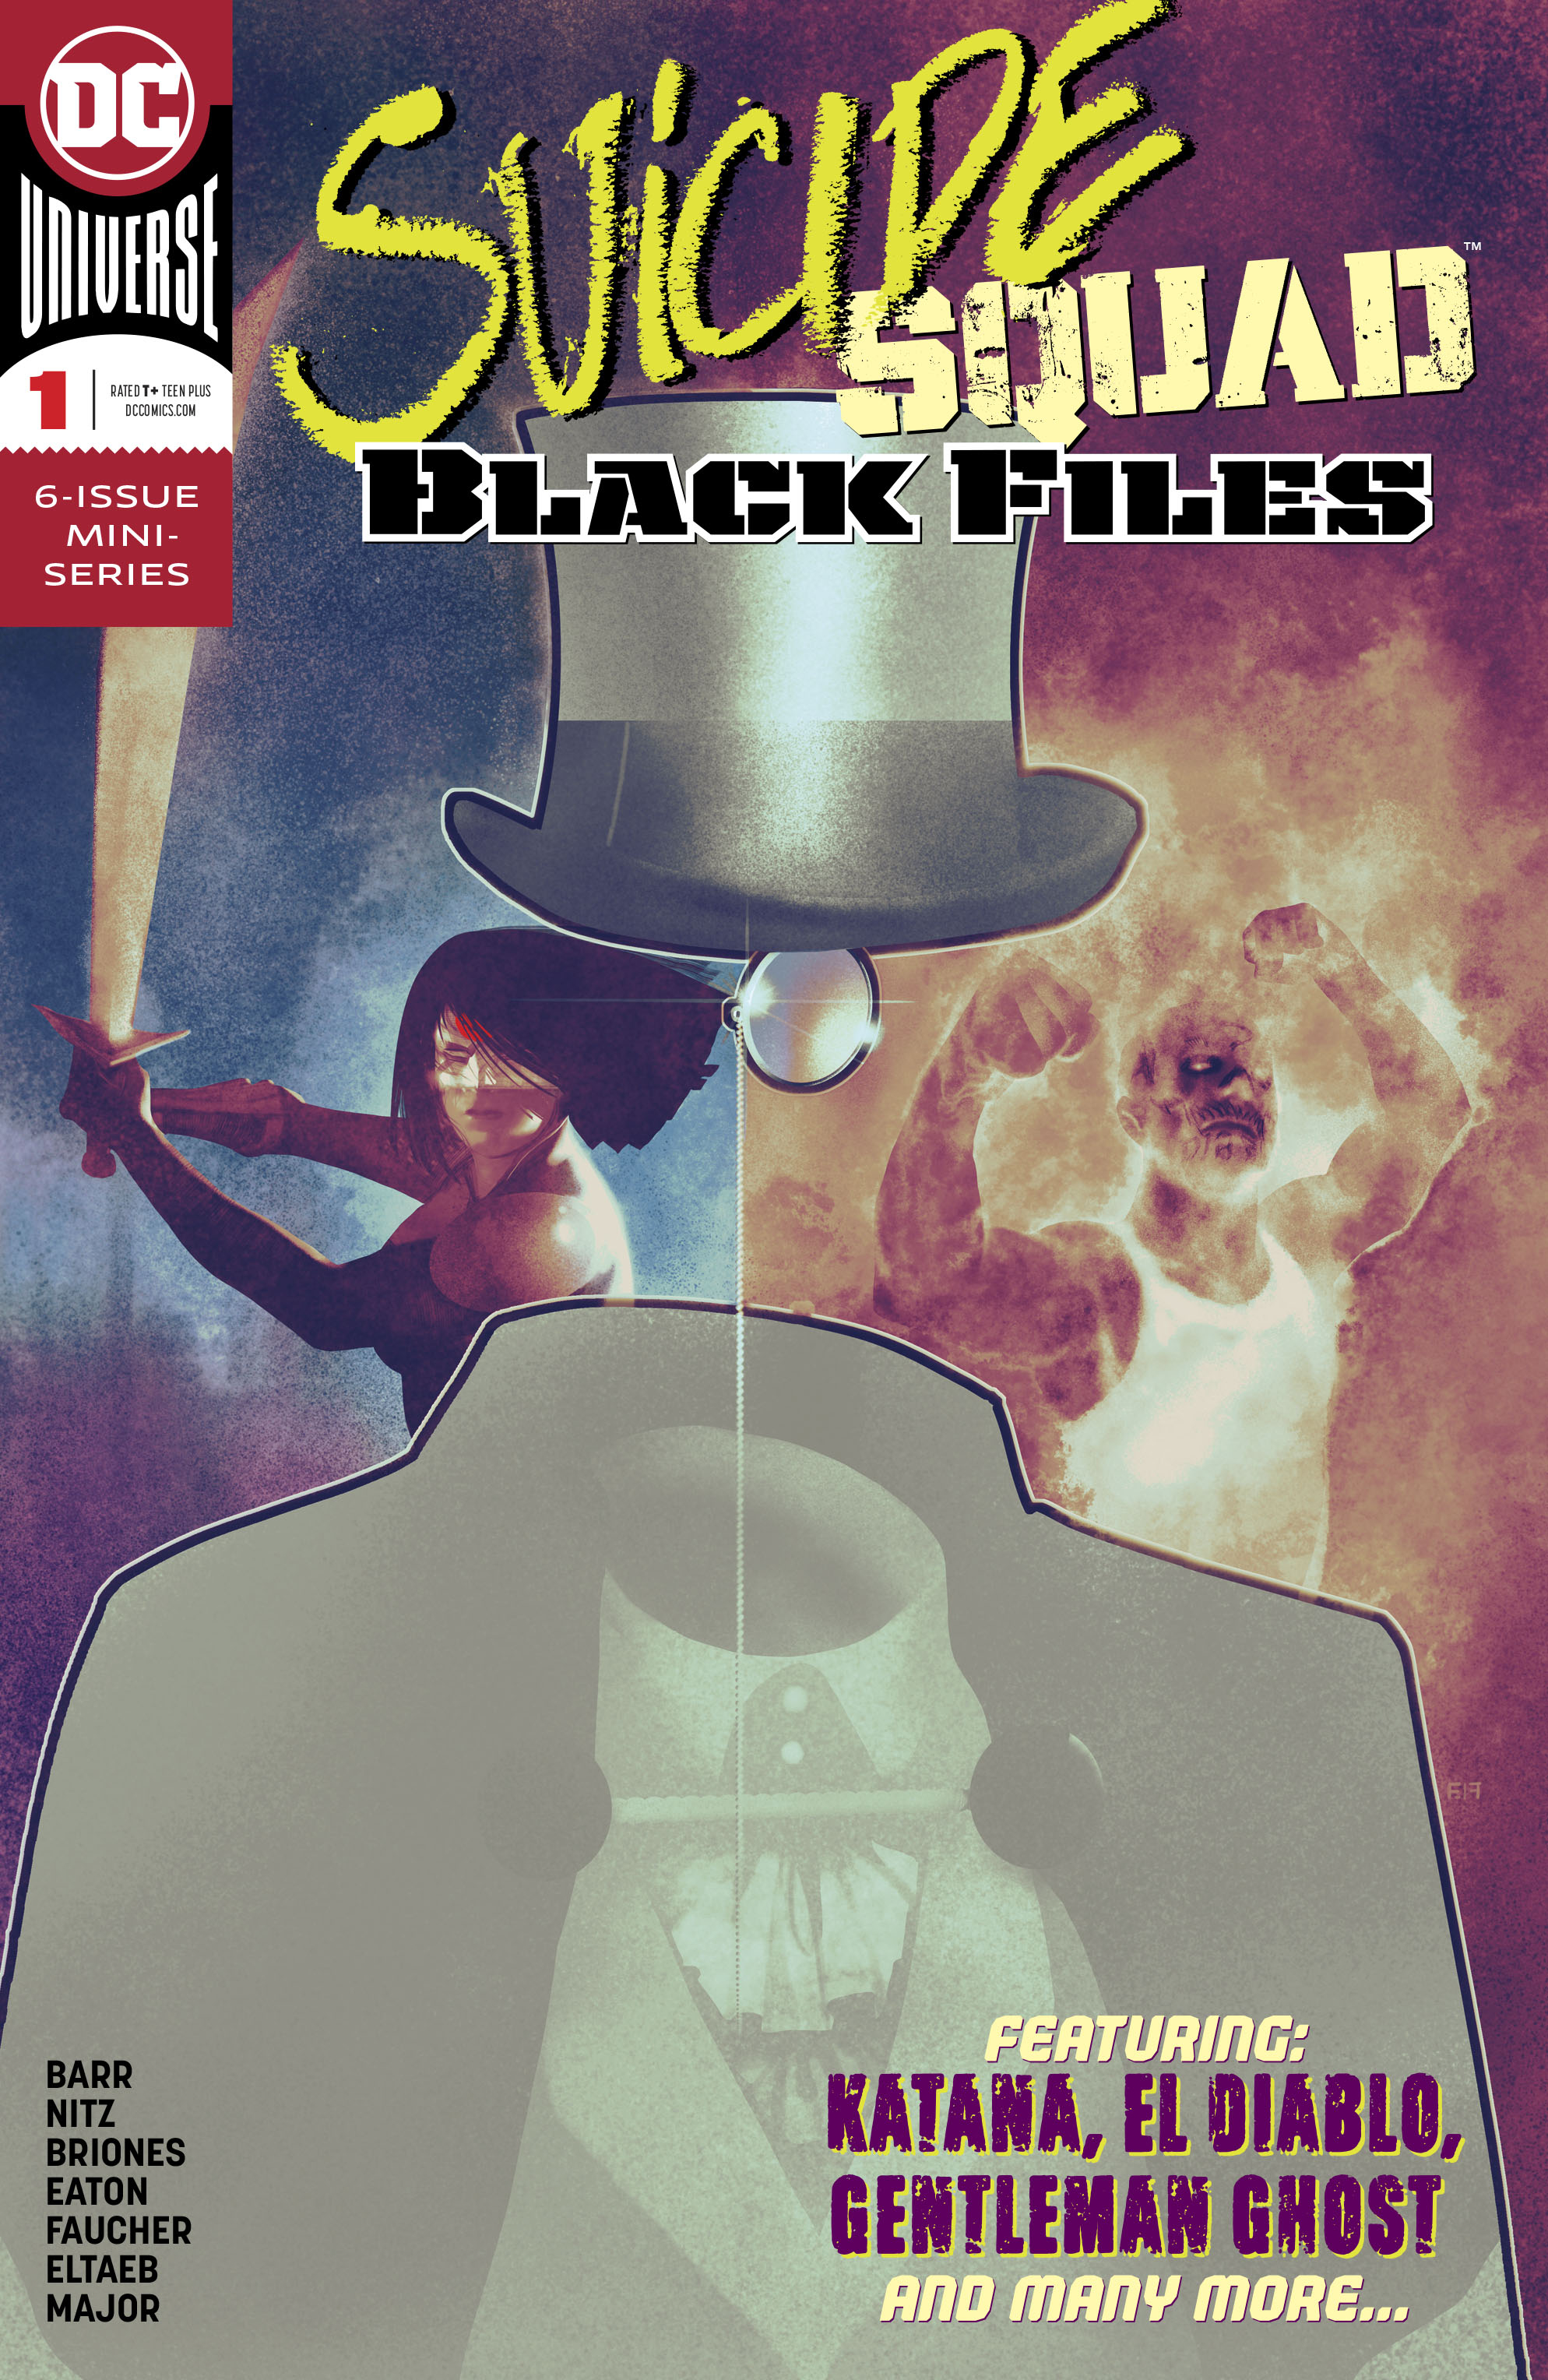 SUICIDE SQUAD BLACK FILES #1 (OF 6) (RES)